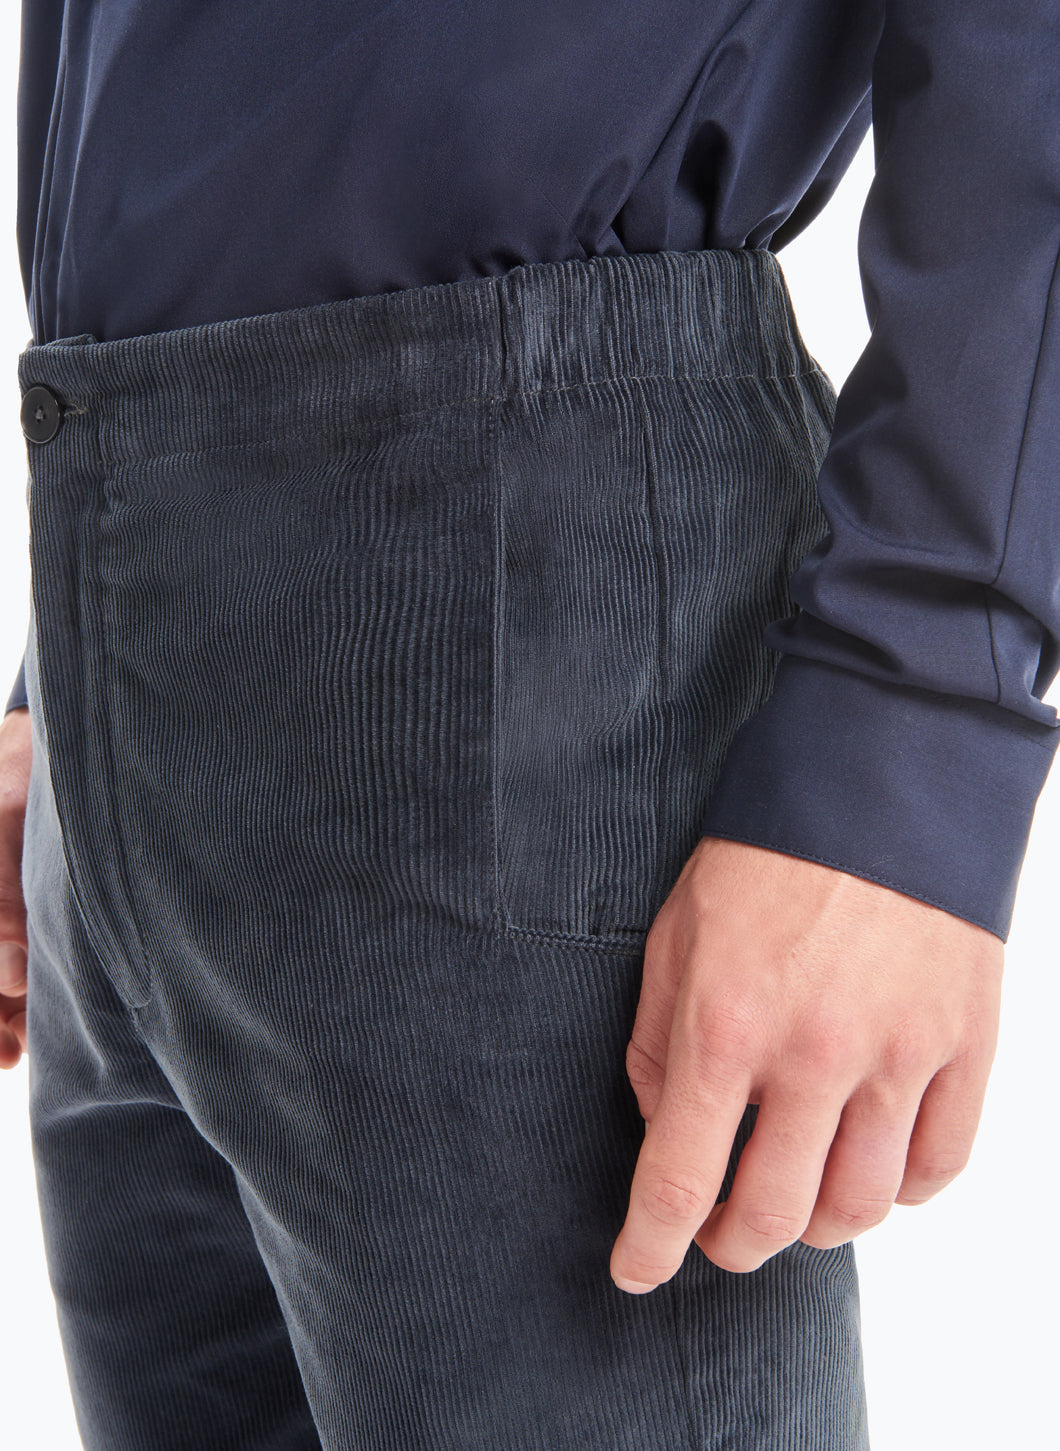 Pants with Notched Pockets in Petrol Blue Corduroy